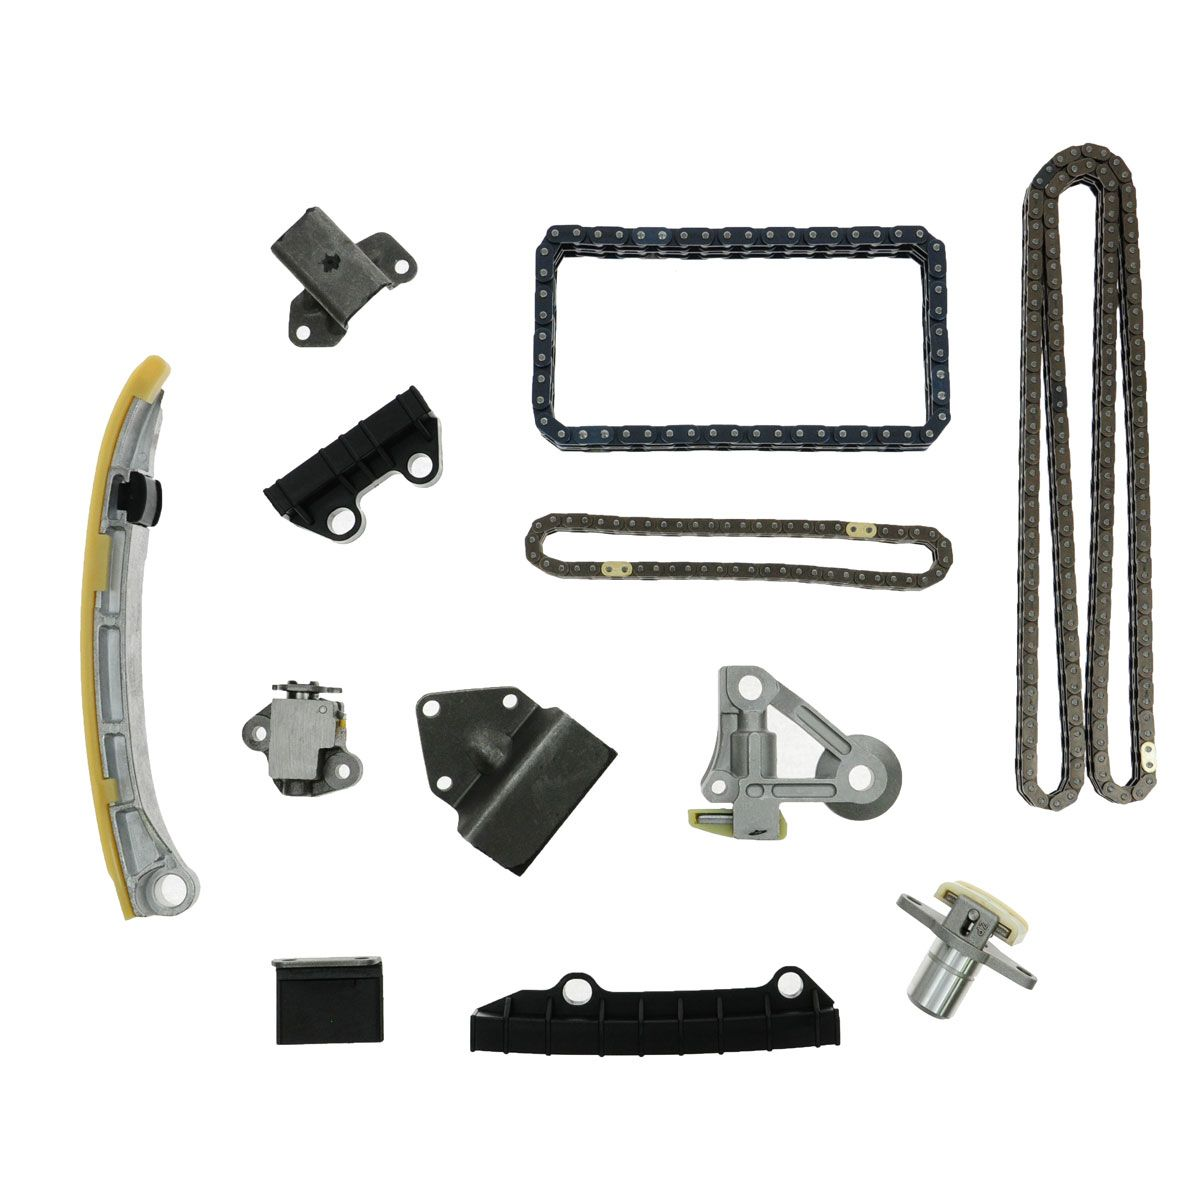 Timing Chain Component Tensioner Rail Set Kit For Grand